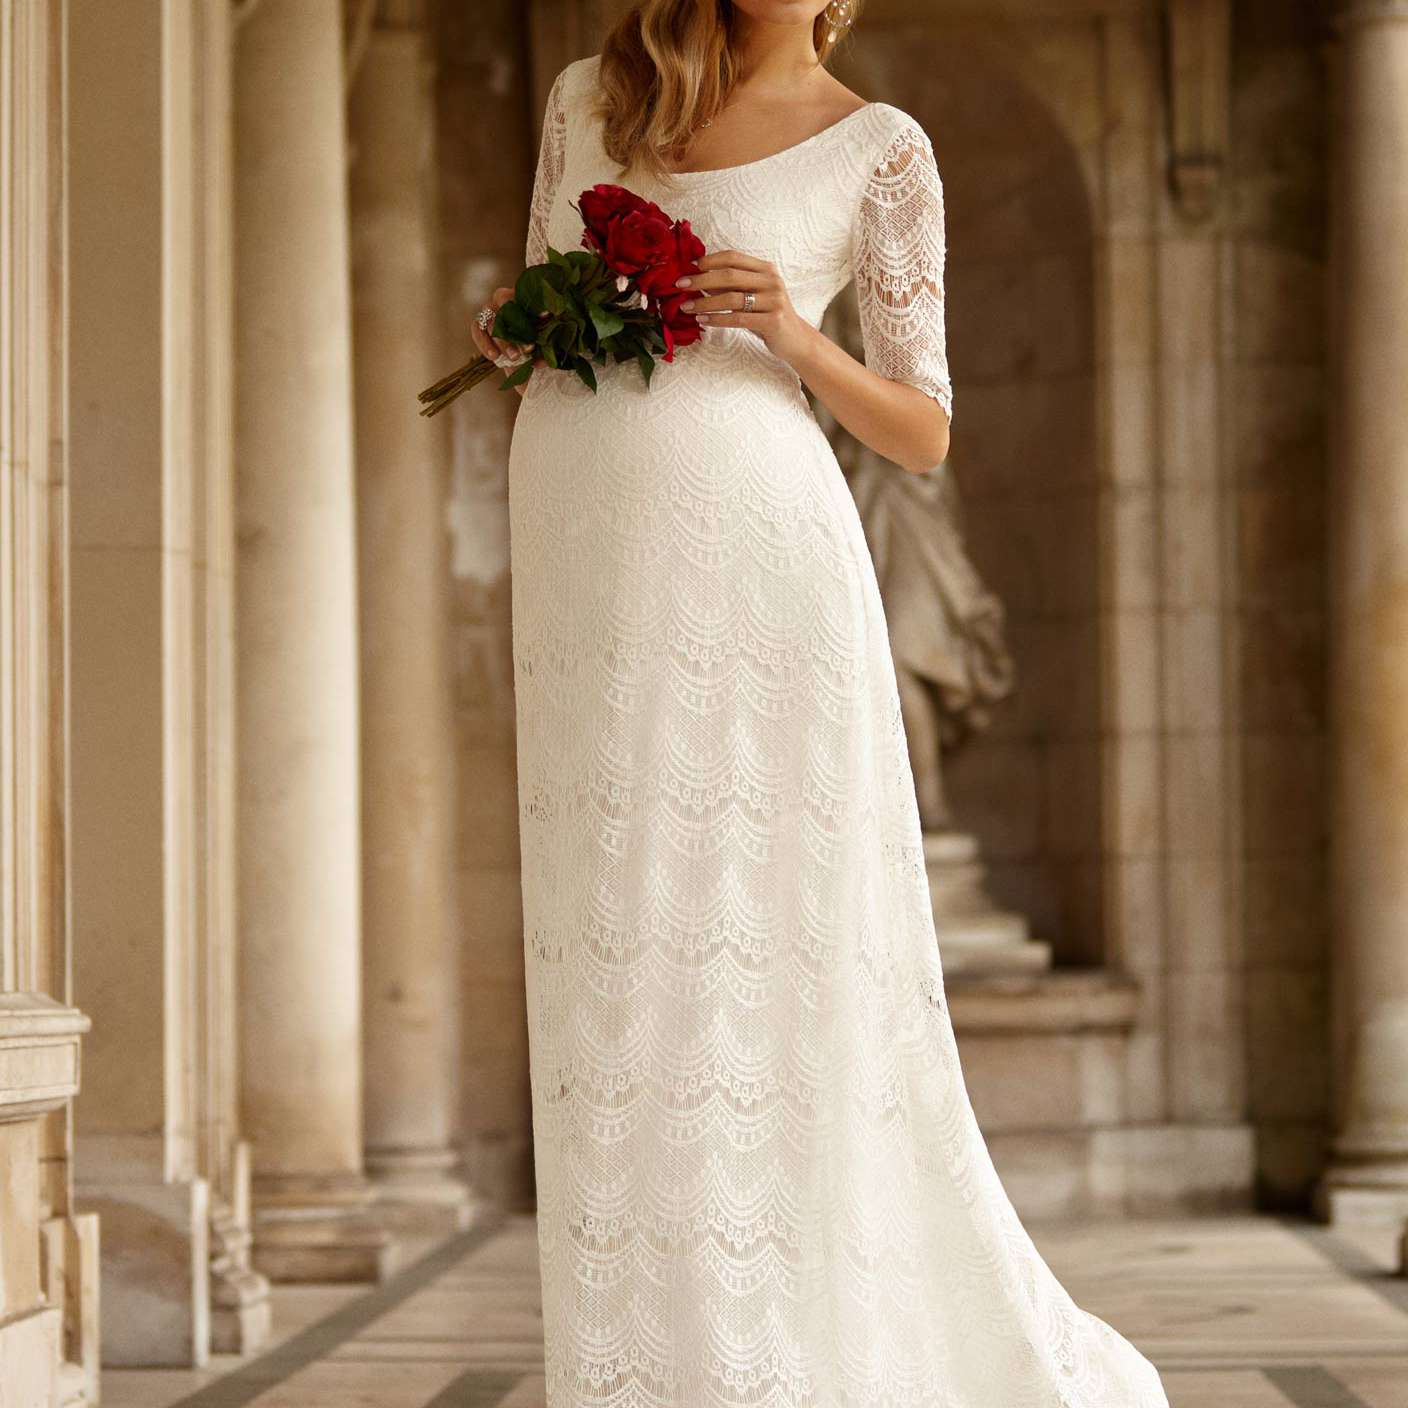 How To Find The Perfect Maternity Wedding Dress: 10 Tips